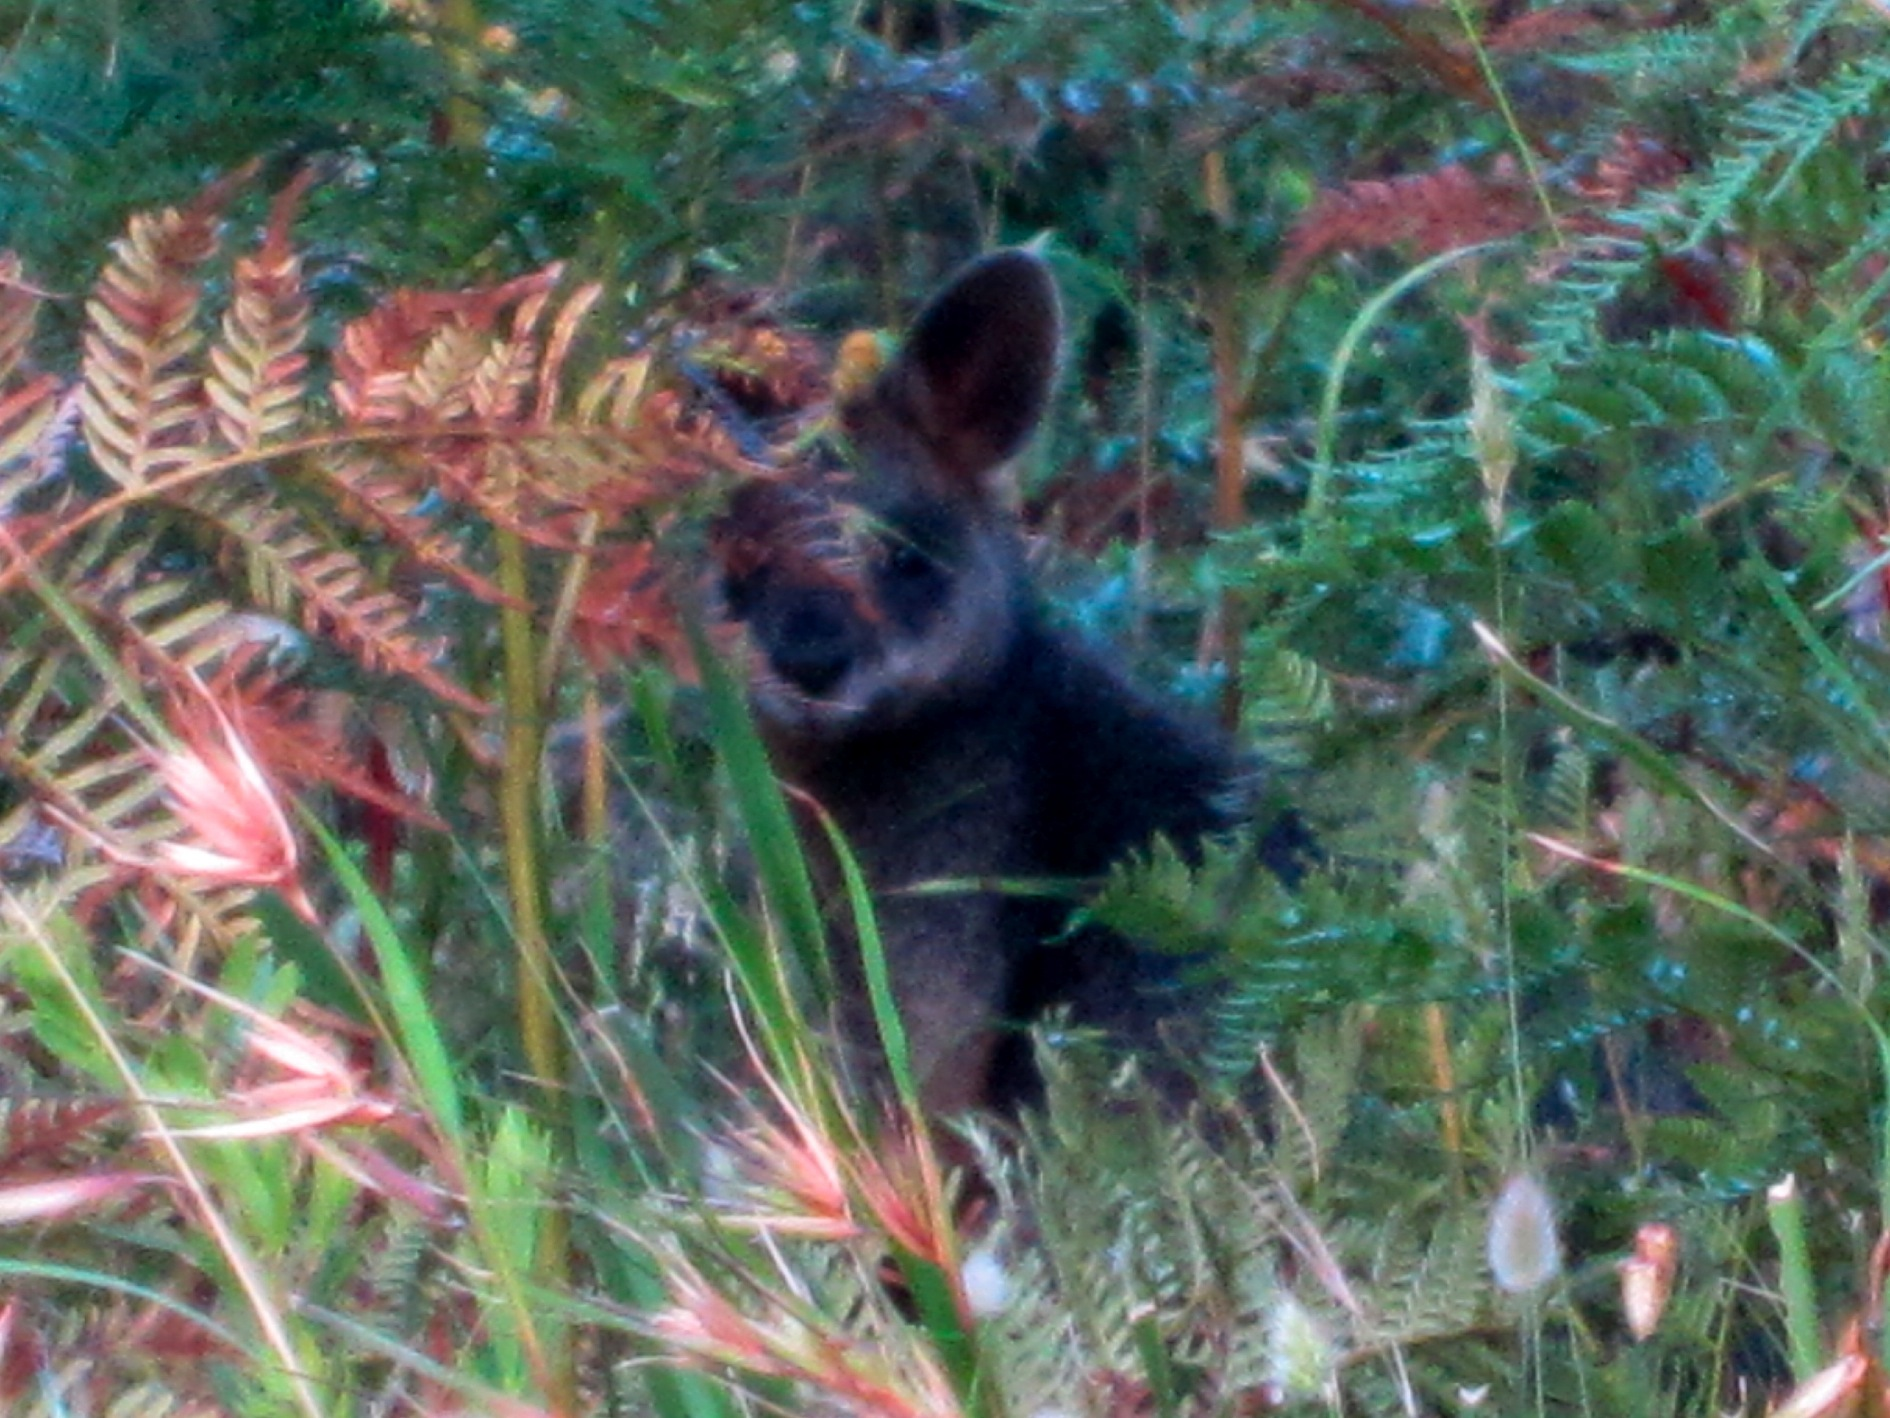 Swamp Wallaby, in the Great Otway National Park, 2 Dec 2011